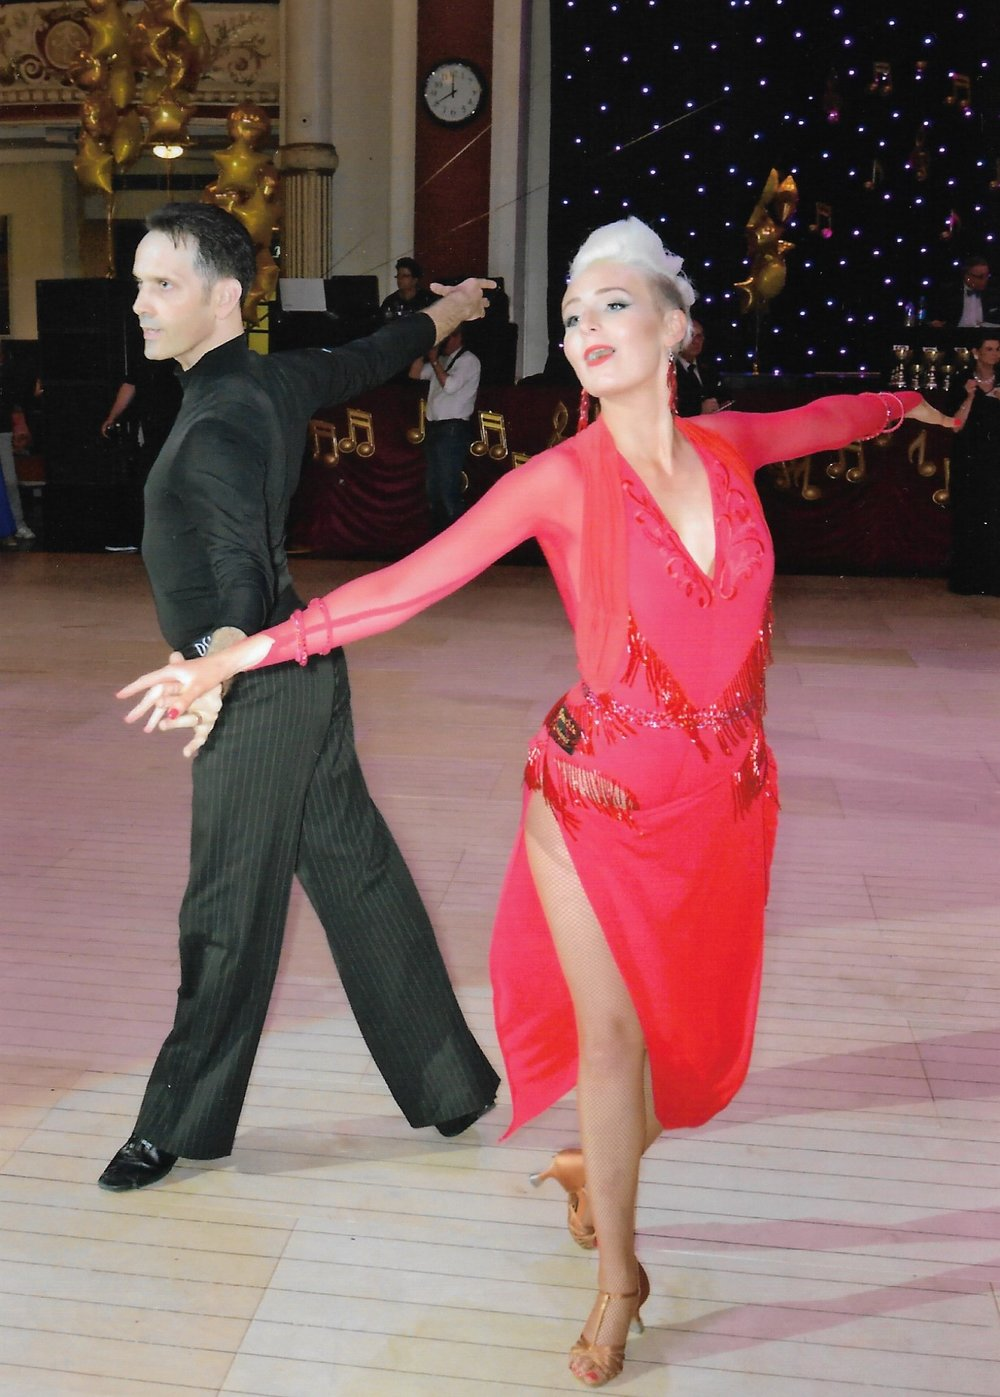 Rozz Strachan. 2nd in Latin American 4th in Ballroom Grand Fiinals 2018